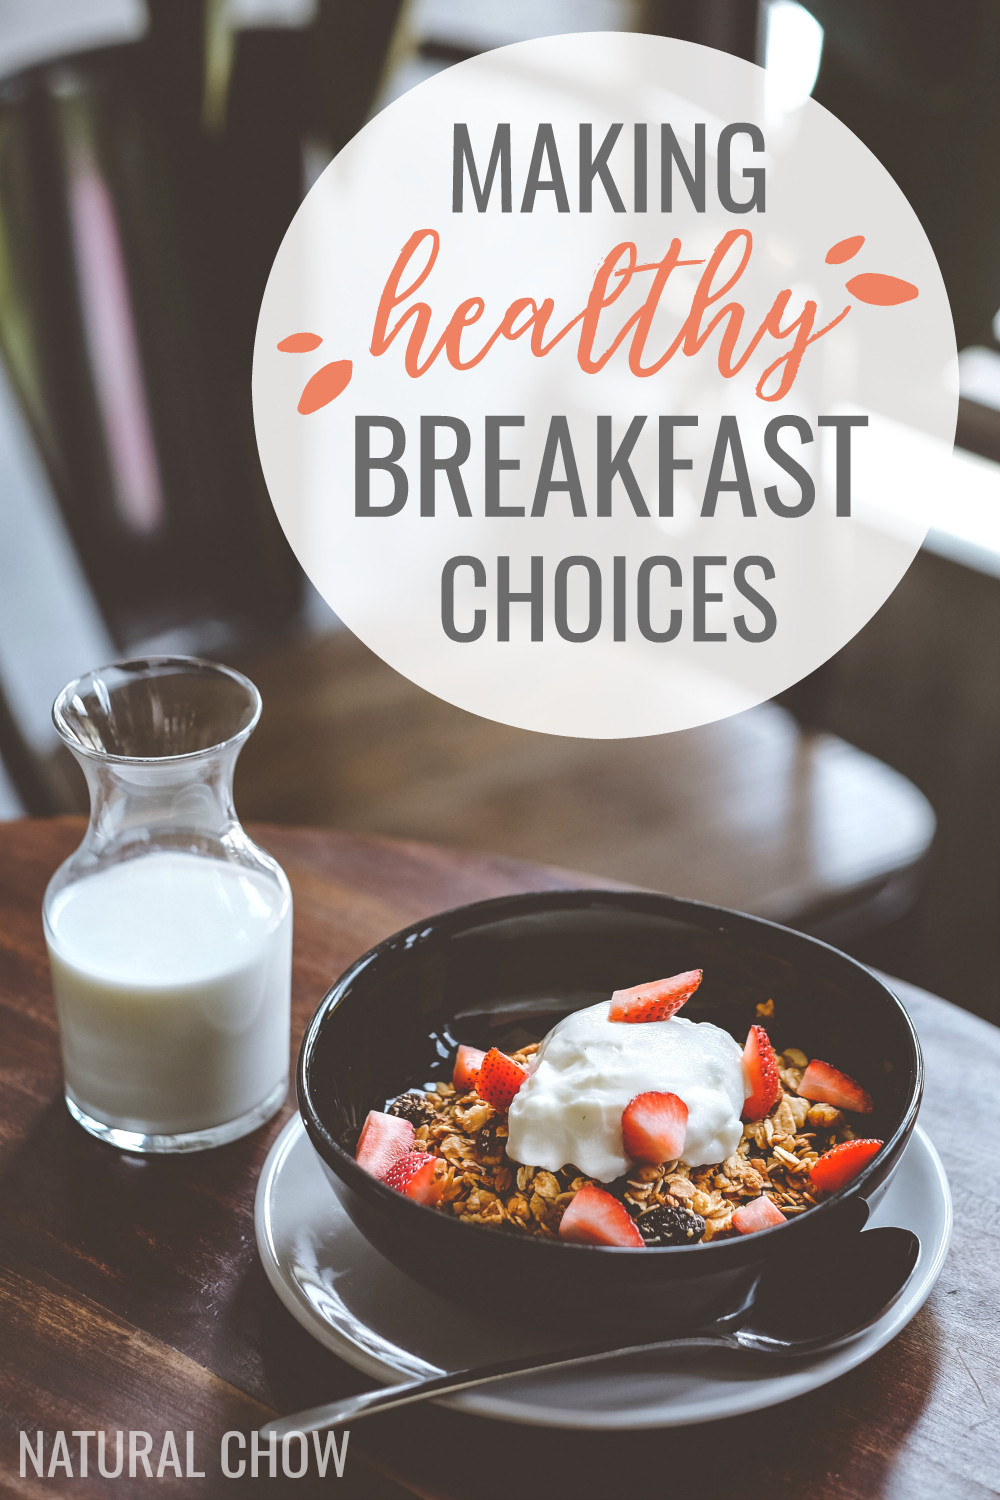 Healthy Breakfast Choices  Making Healthy Breakfast Choices